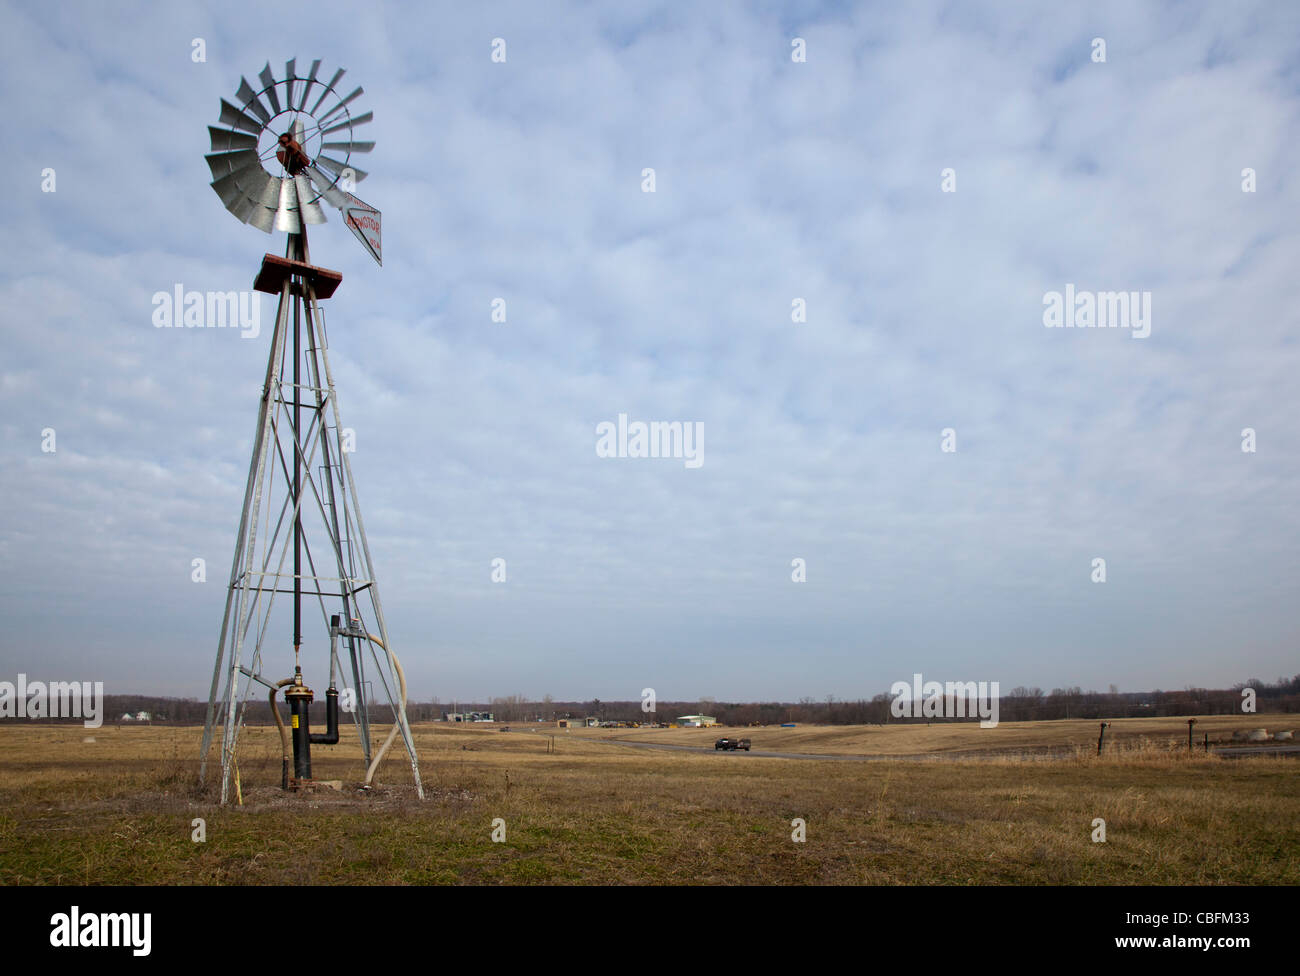 A windmill pumps methane gas from decaying garbage at St. Clair County's Smith's Creek Landfill. - Stock Image